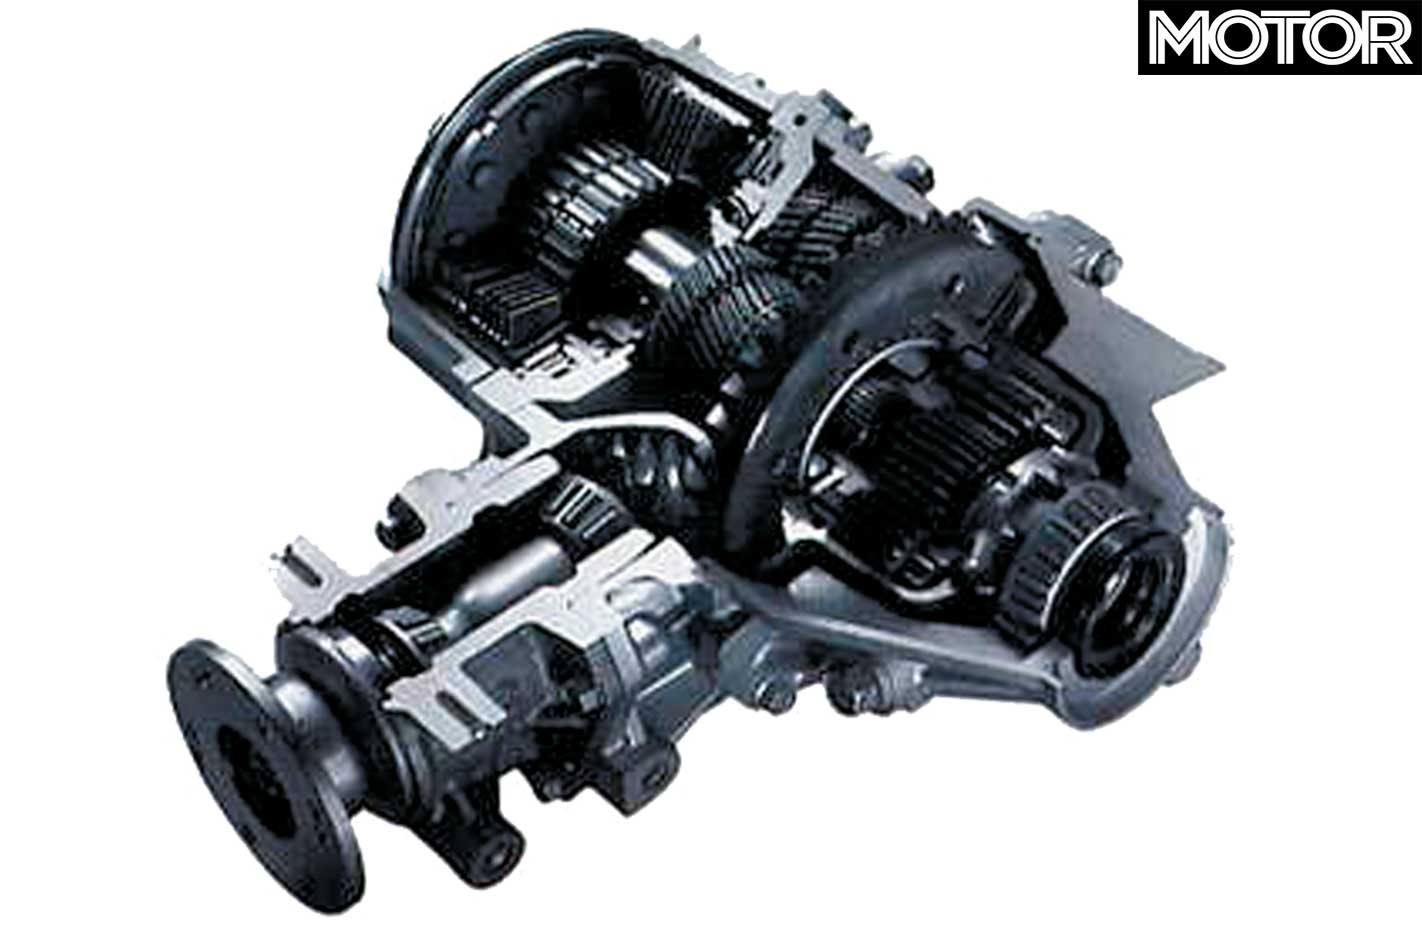 hight resolution of officially the rear diff on the evo viii isn t an active diff it s called active yaw control but that s just a piece of marketing crud so they don t have